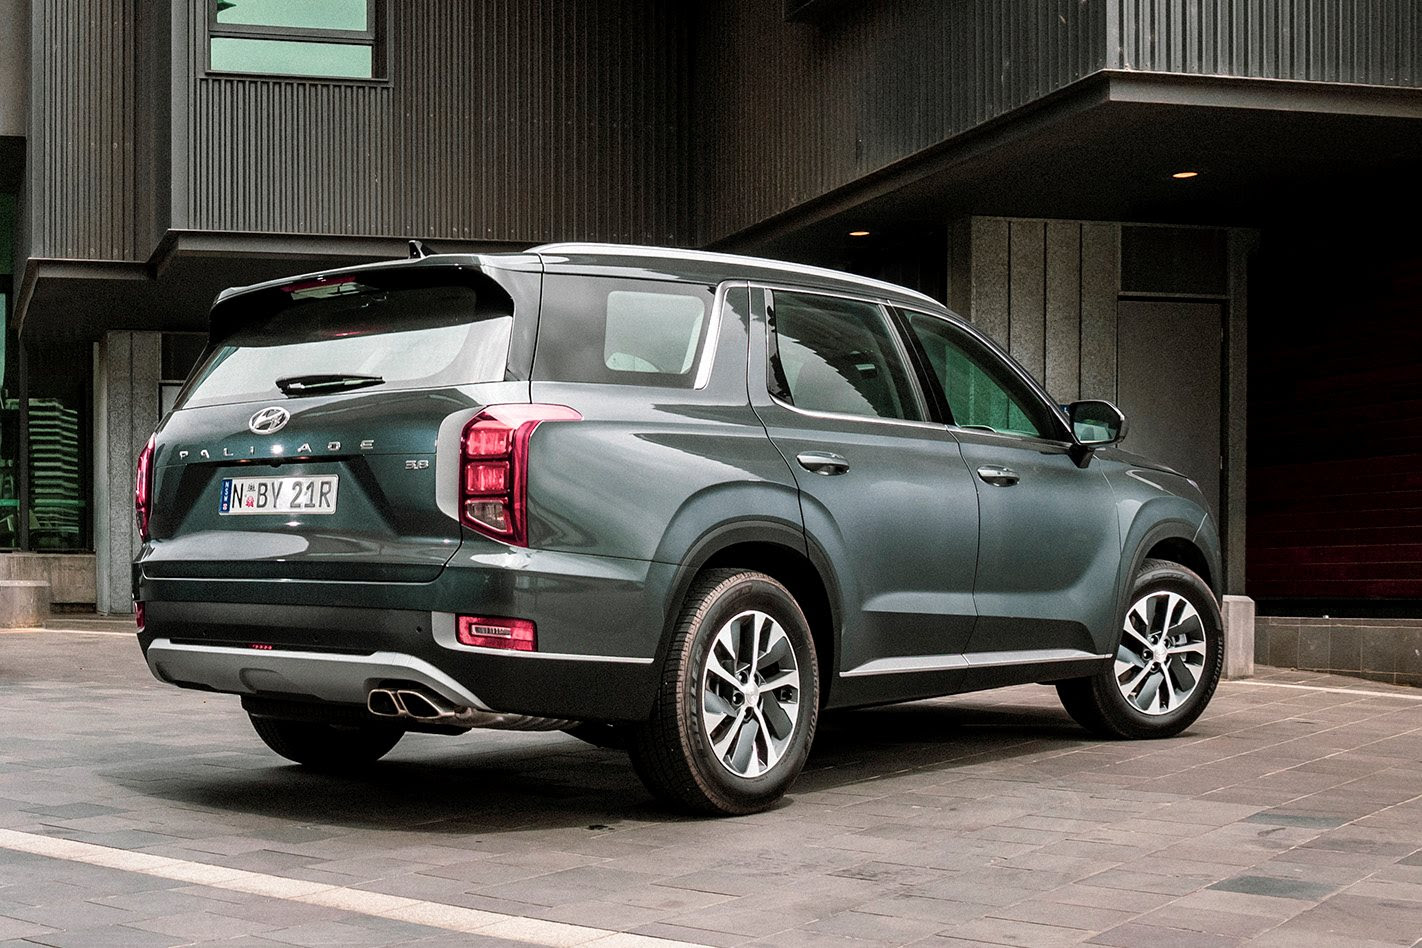 2021 Hyundai Palisade 3.6L V6 review